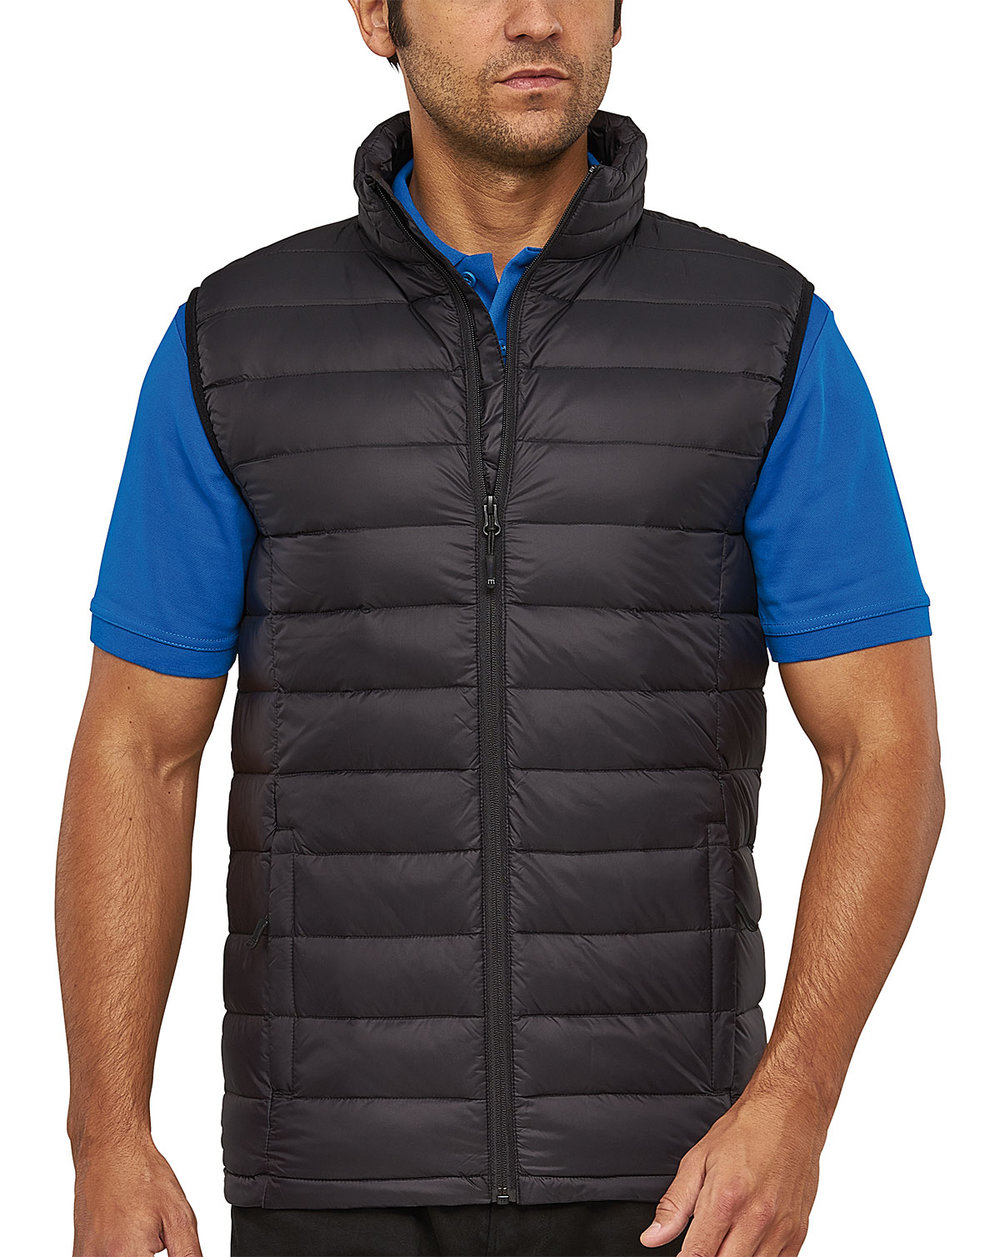 SKY DOWNTECH VEST MALE MACBLACK